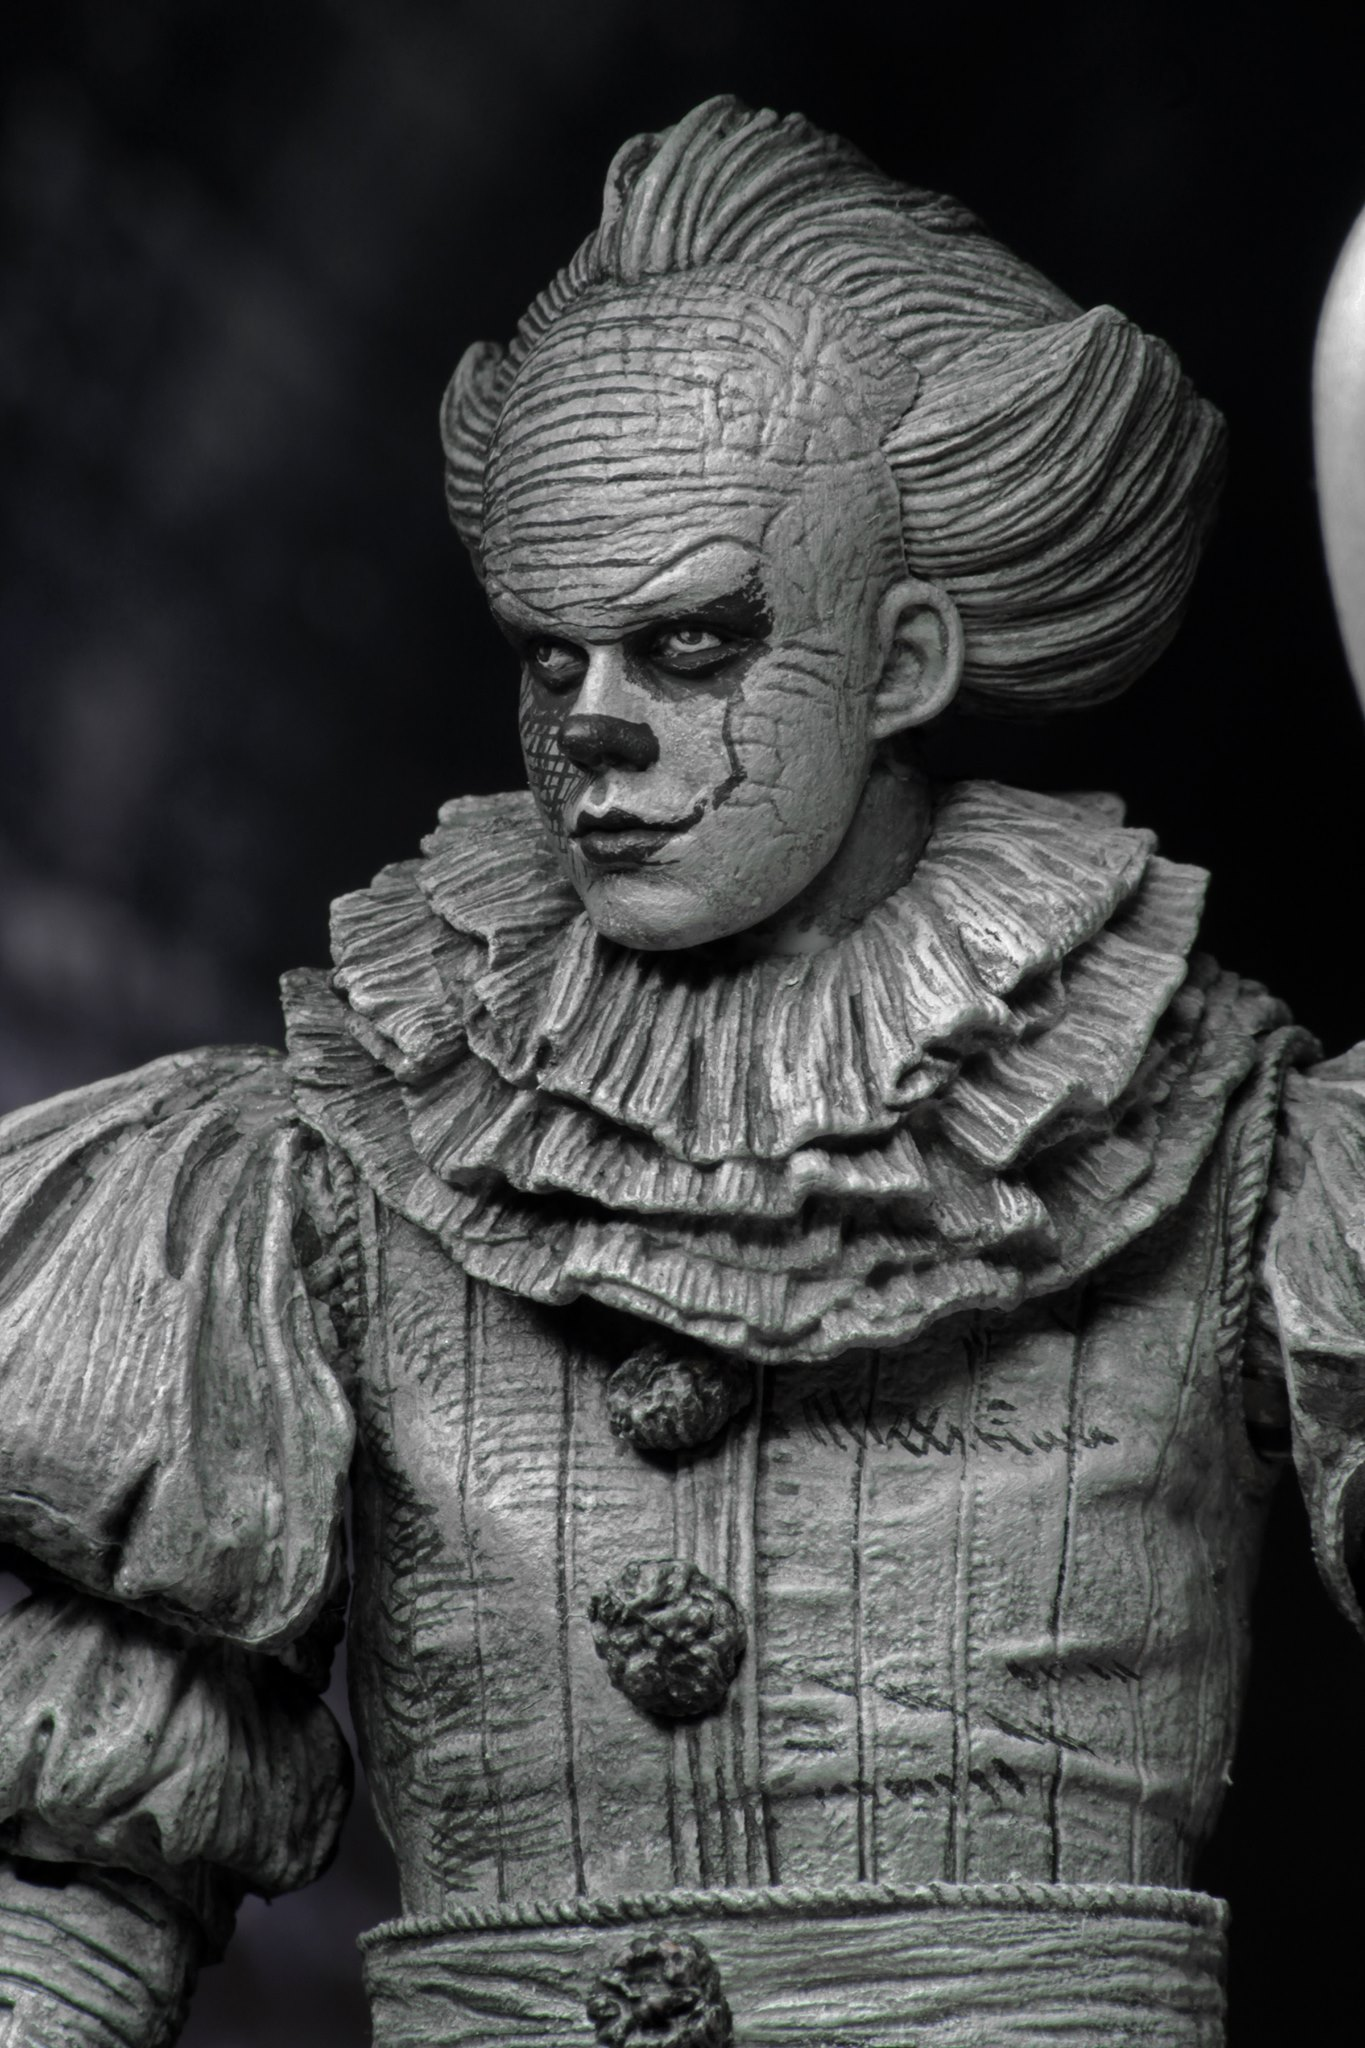 Neca Pennywise Sdcc 2019 13